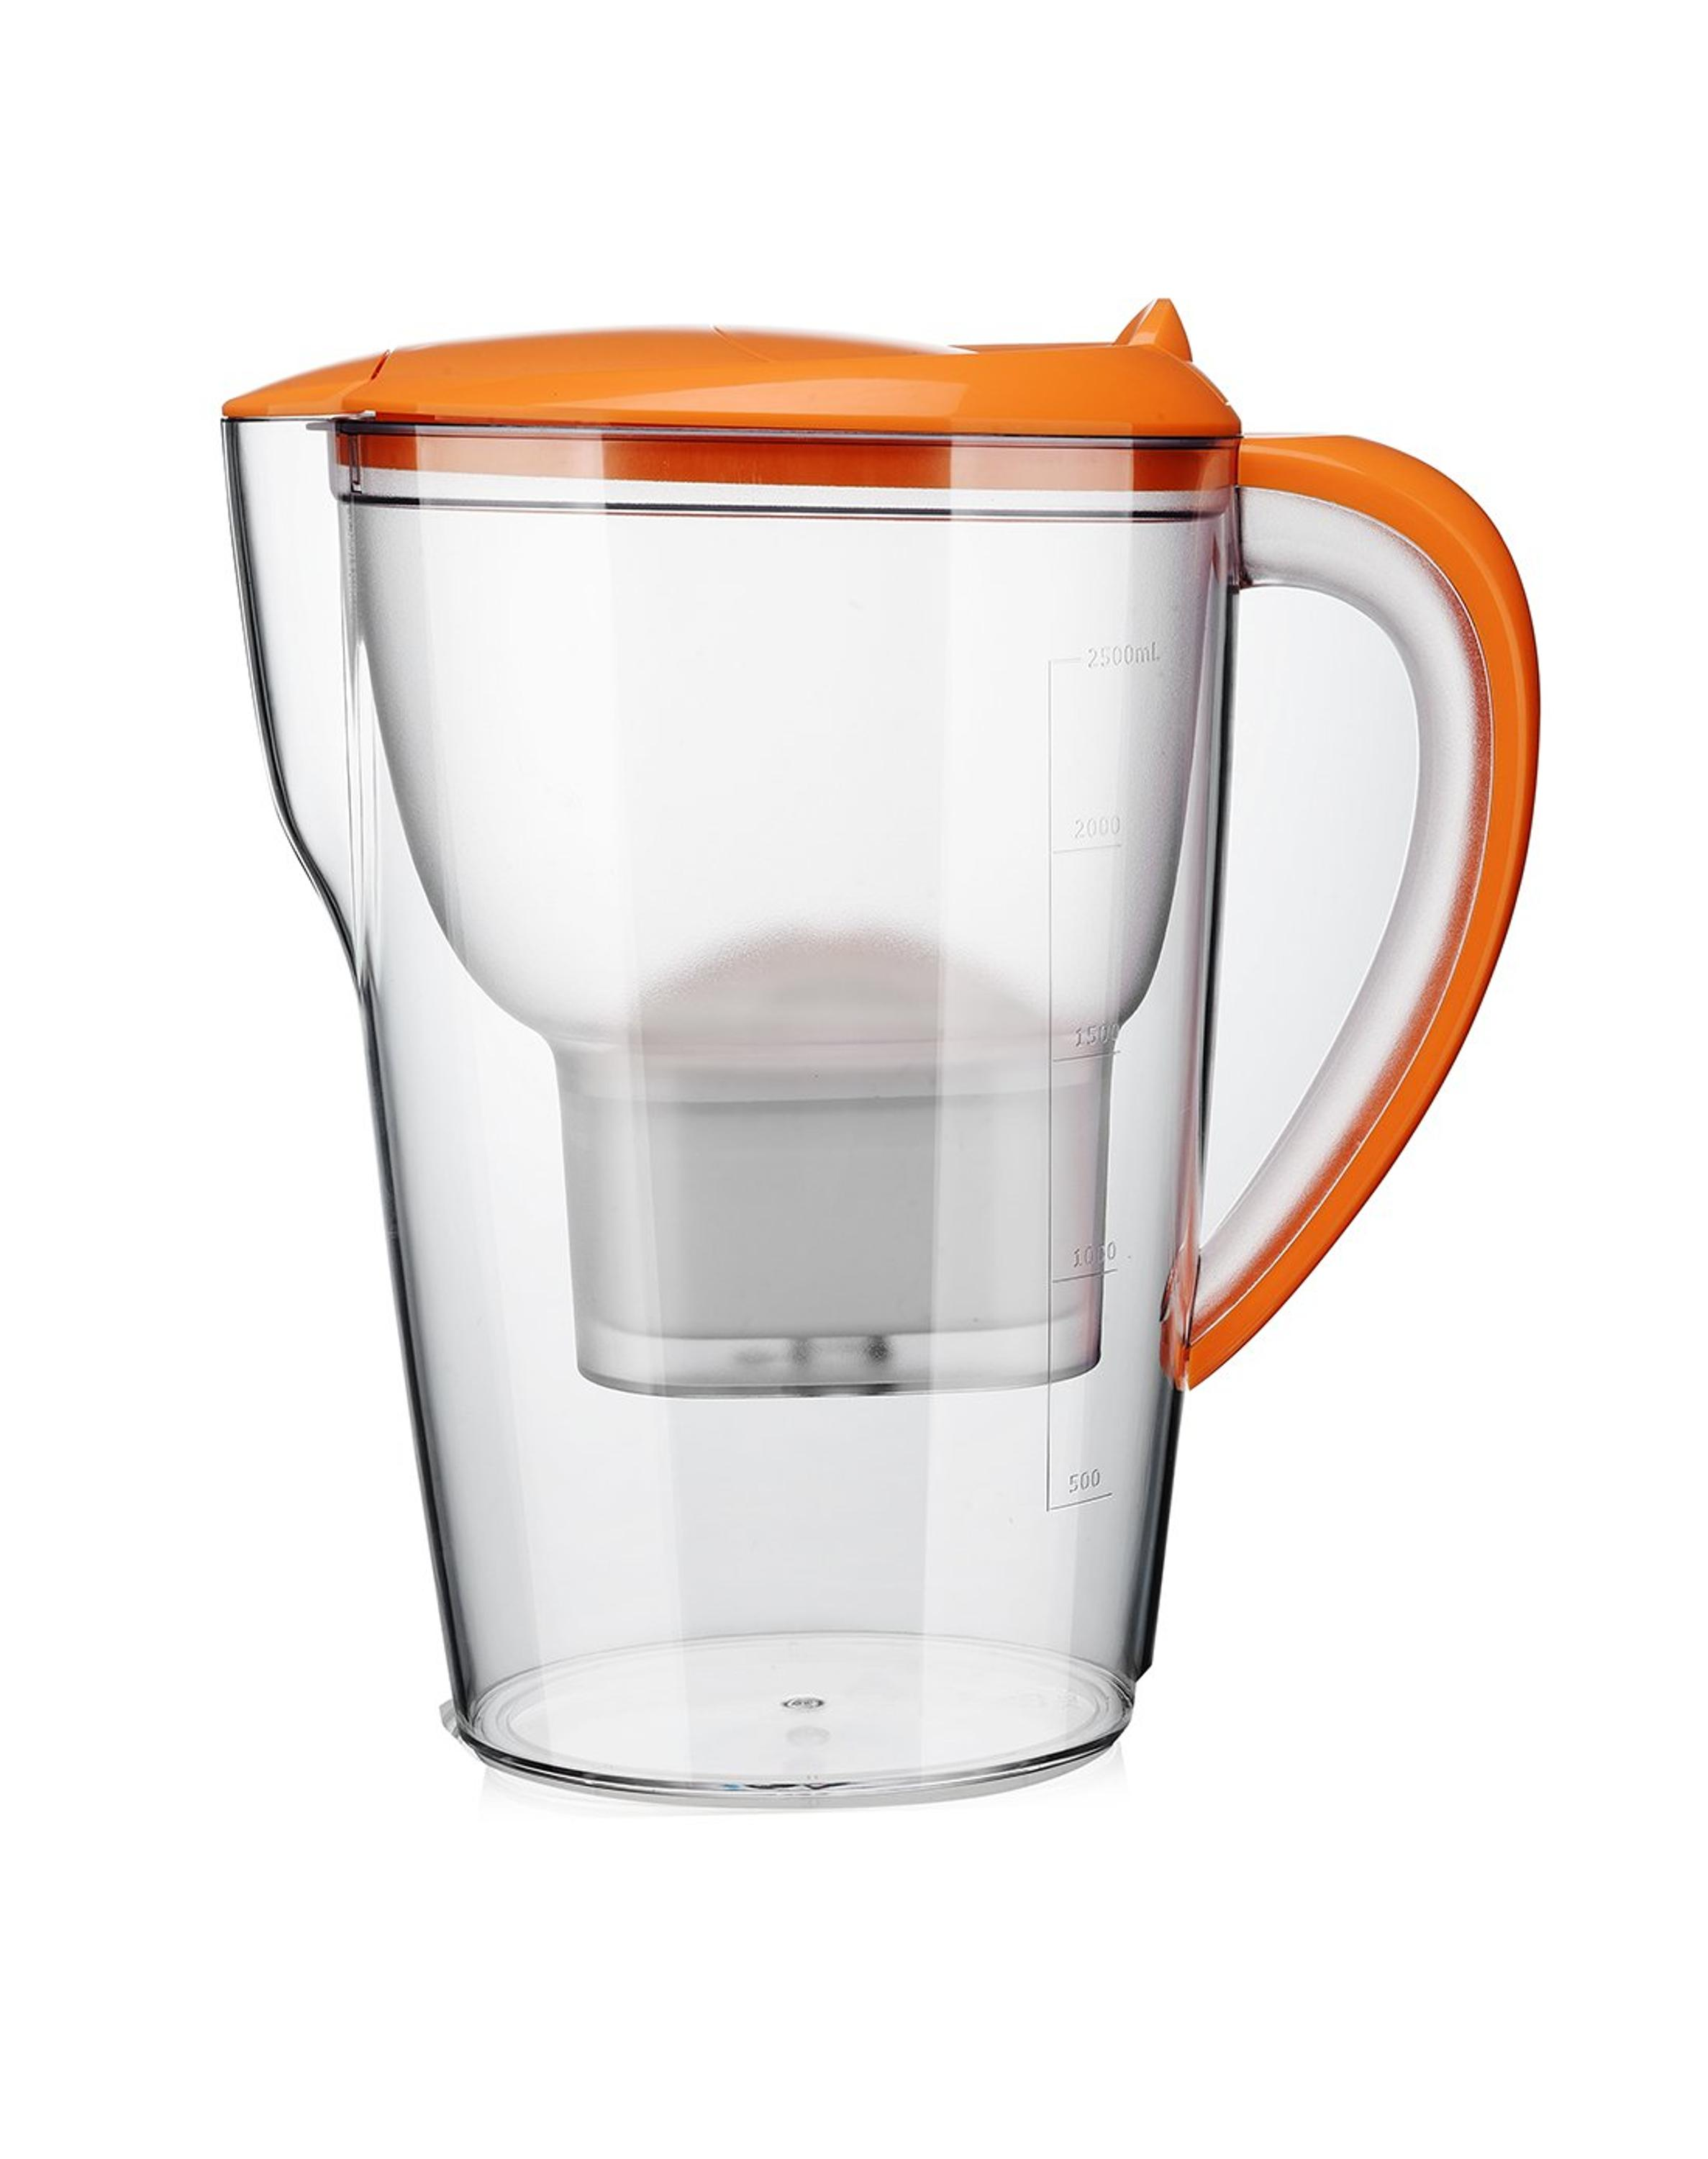 2 5l Capacity Water Filter Pitcher With Coco Activated Carbon